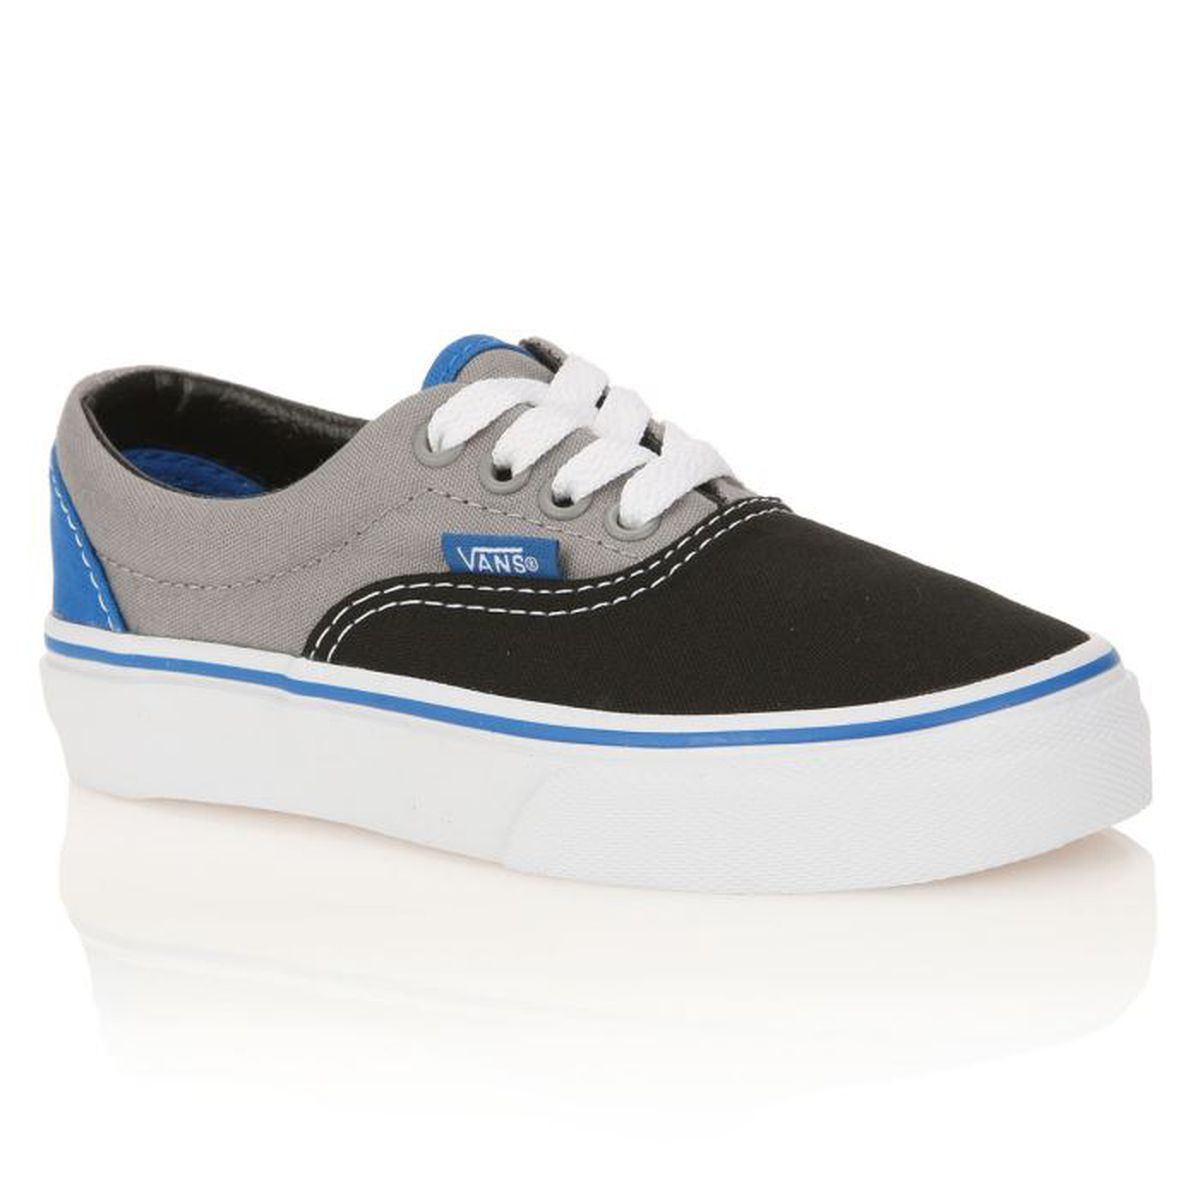 vans baskets era enfant gar on noir gris bleu achat vente basket cdiscount. Black Bedroom Furniture Sets. Home Design Ideas